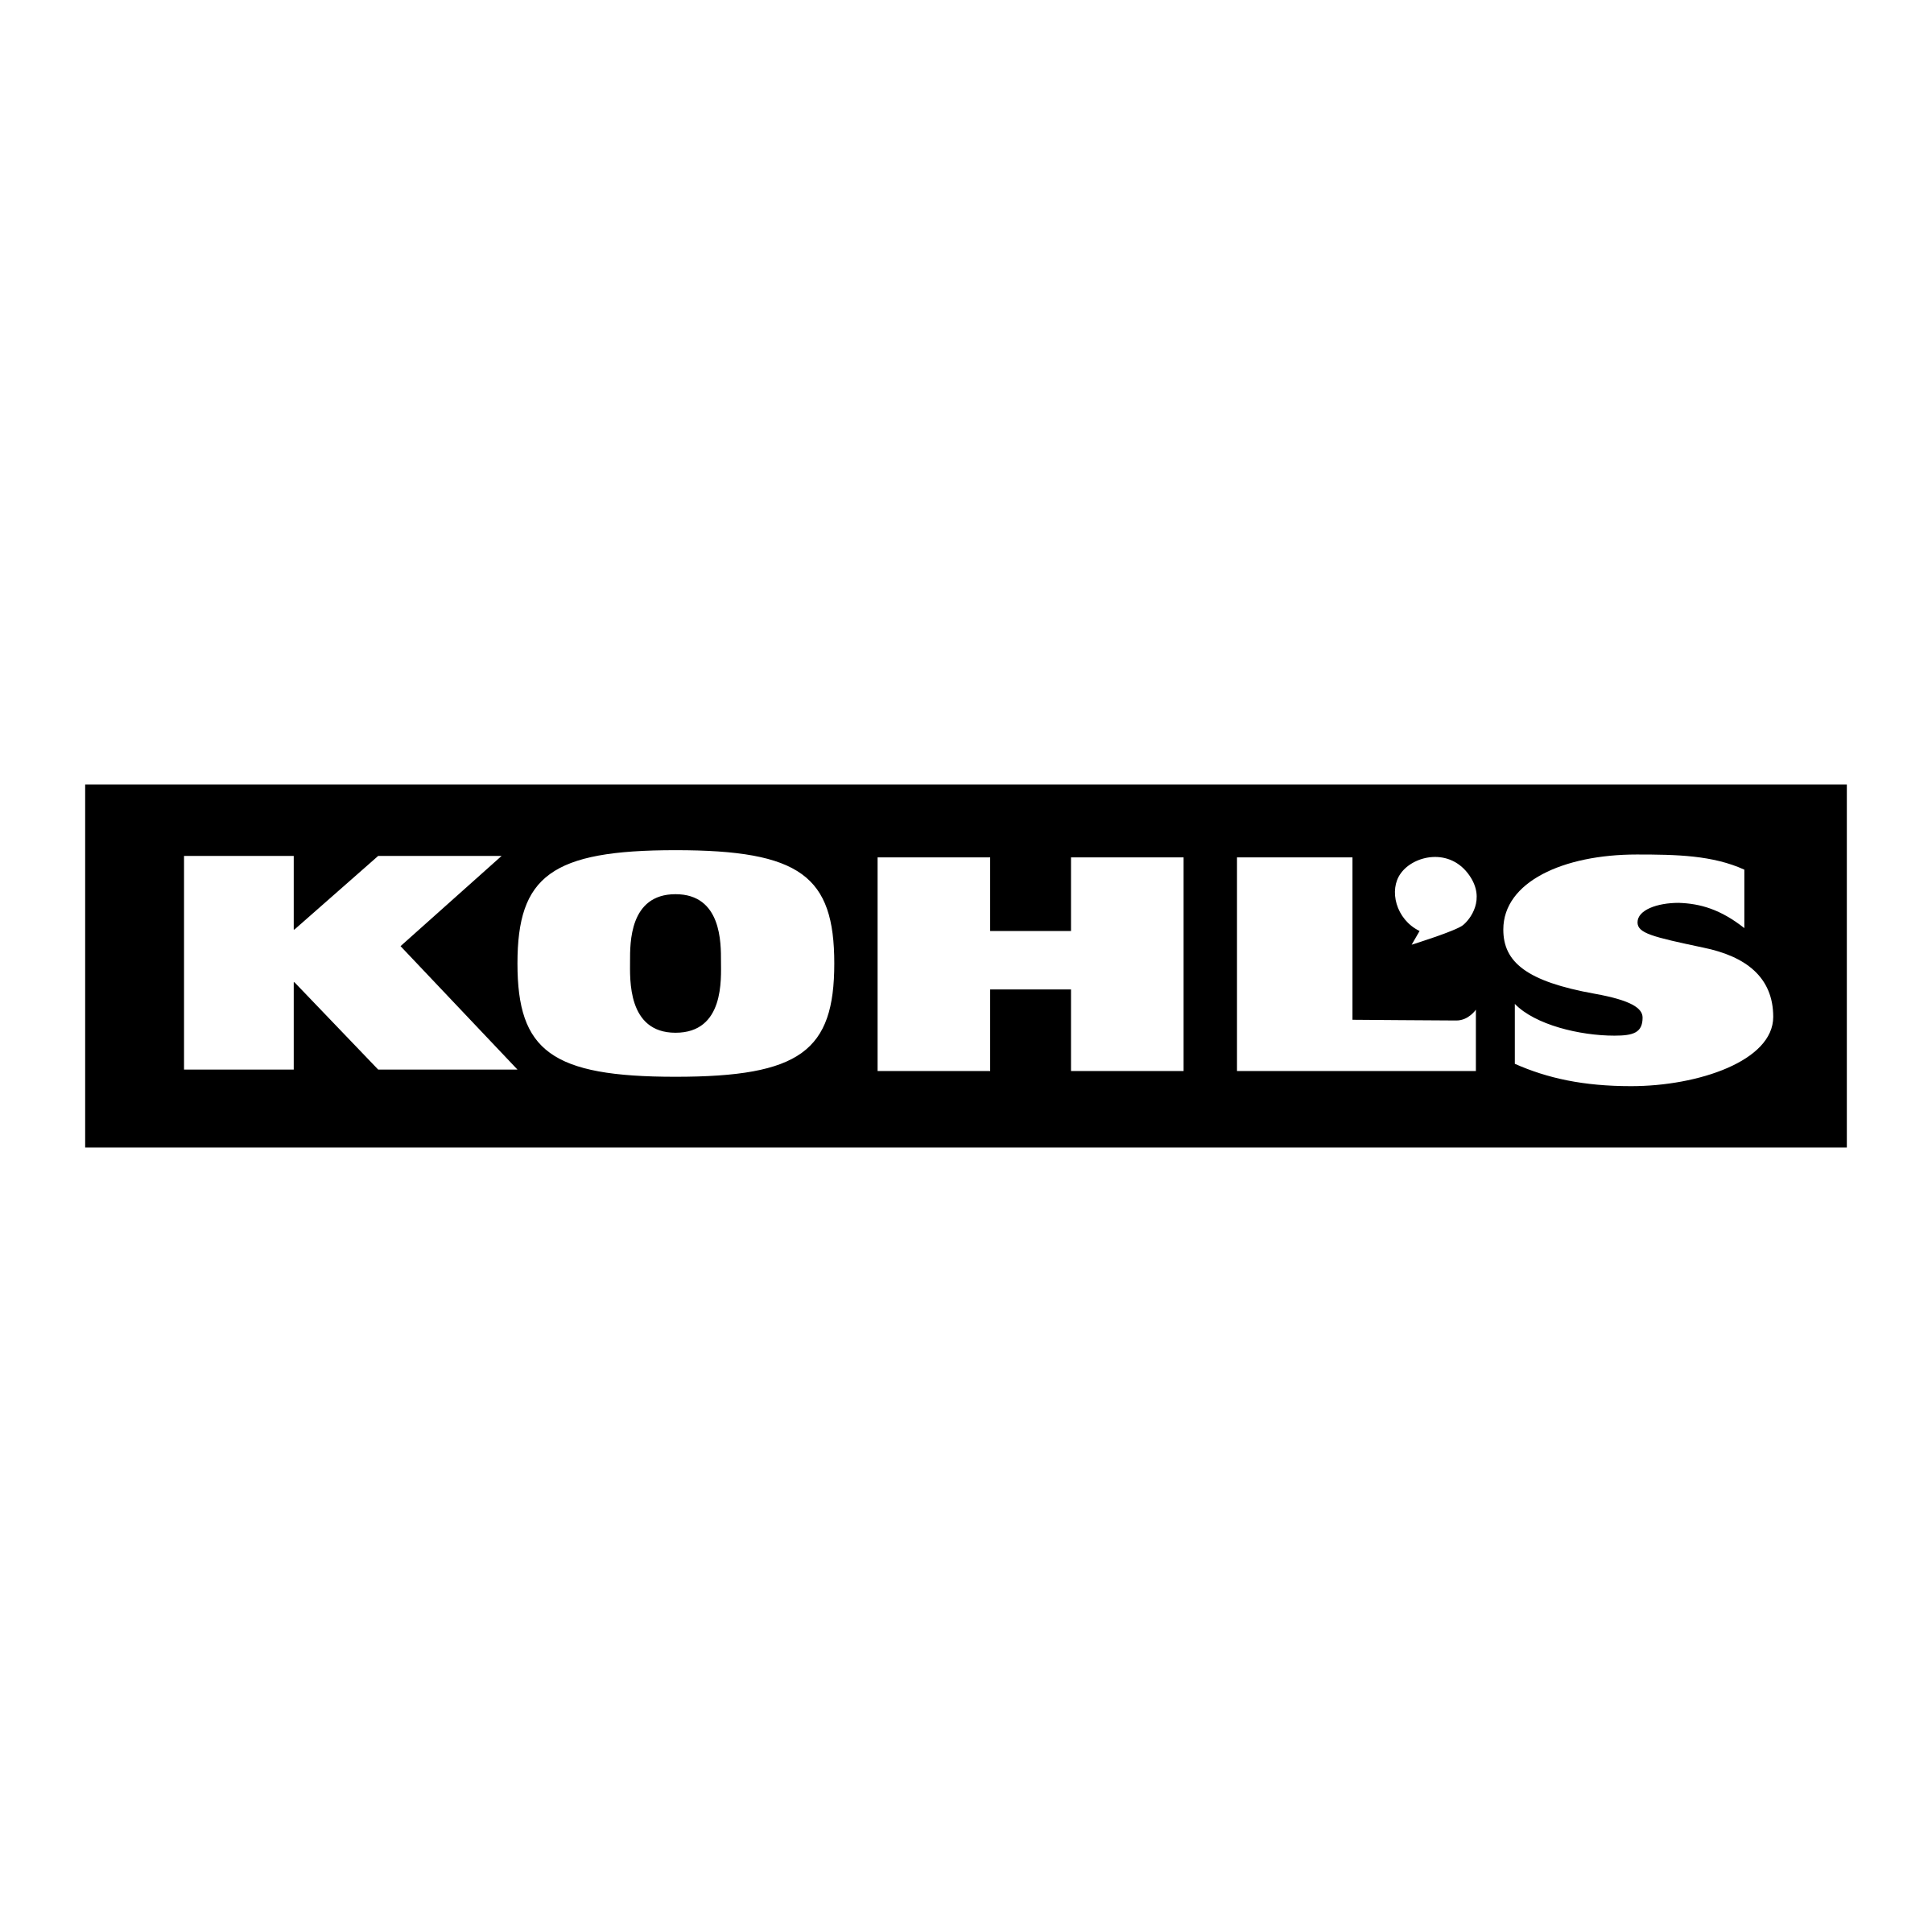 Kohl's Mystery Offer - Check Your Email: 40% off, 30% off or 20% off Valid 5/16 Only